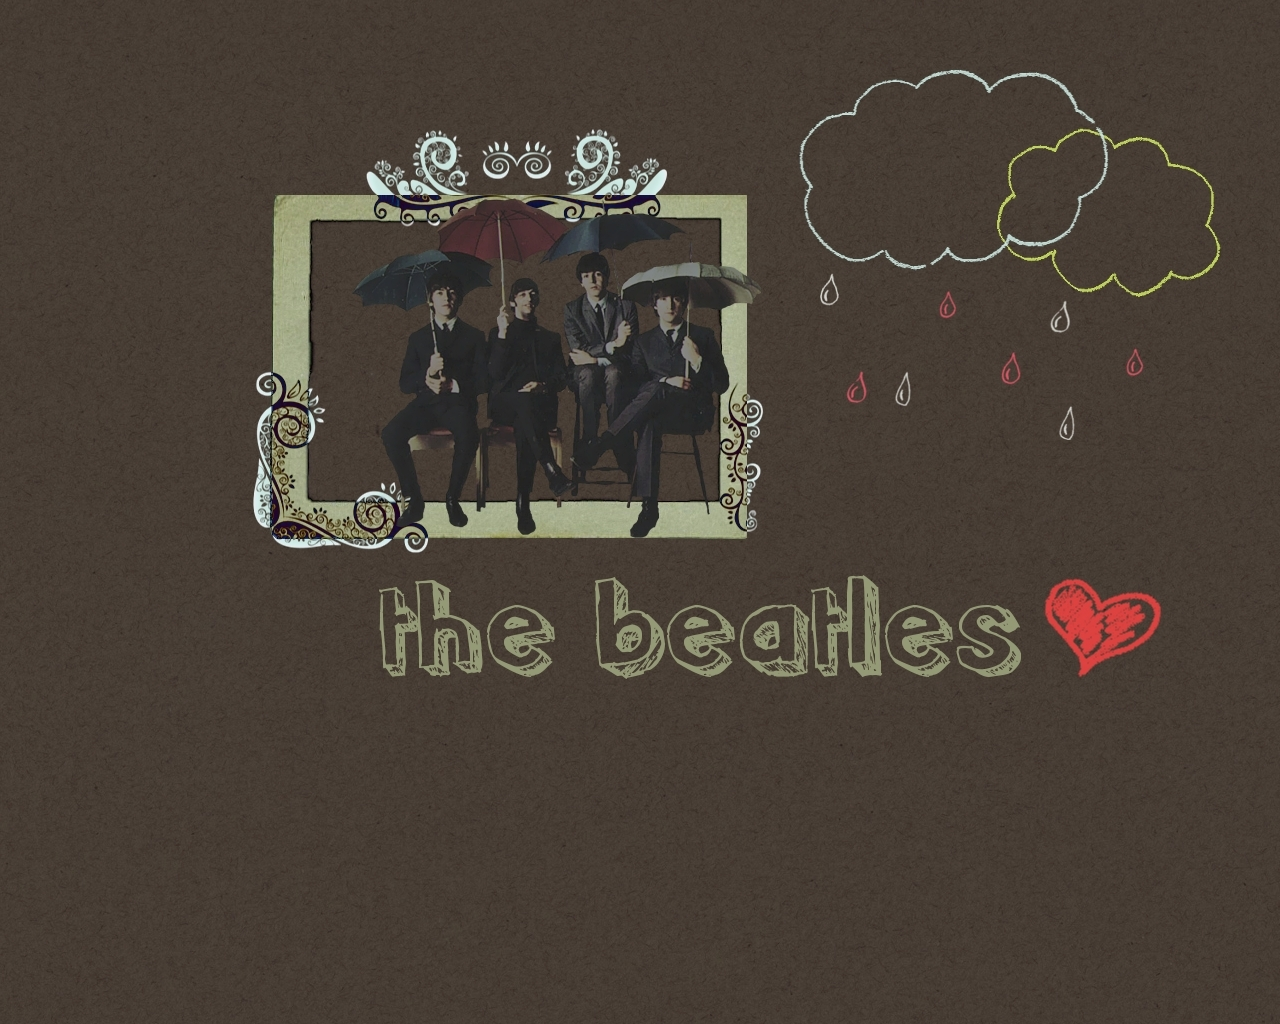 http://4.bp.blogspot.com/_cU82XPOVti0/TPGF4NxBi_I/AAAAAAAAAEw/9NsCkS5dIY8/s1600/Beatles-Wallpaper-the-beatles-3339647-1280-1024.jpg